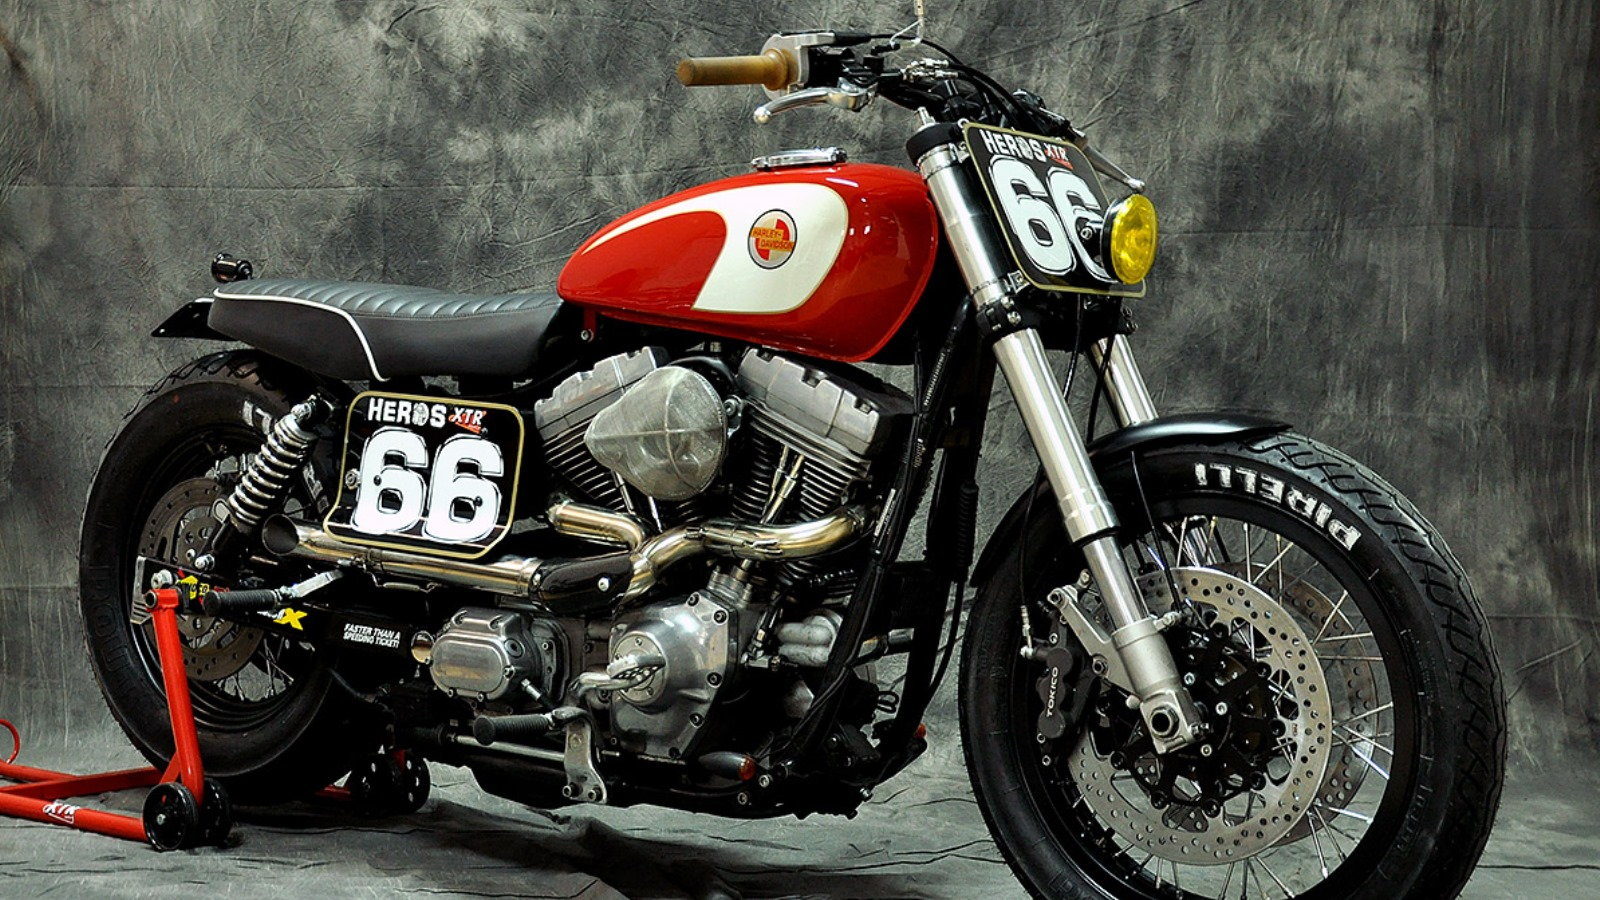 Extreme Pepo Puts Dyna Through Street Tracker Mold